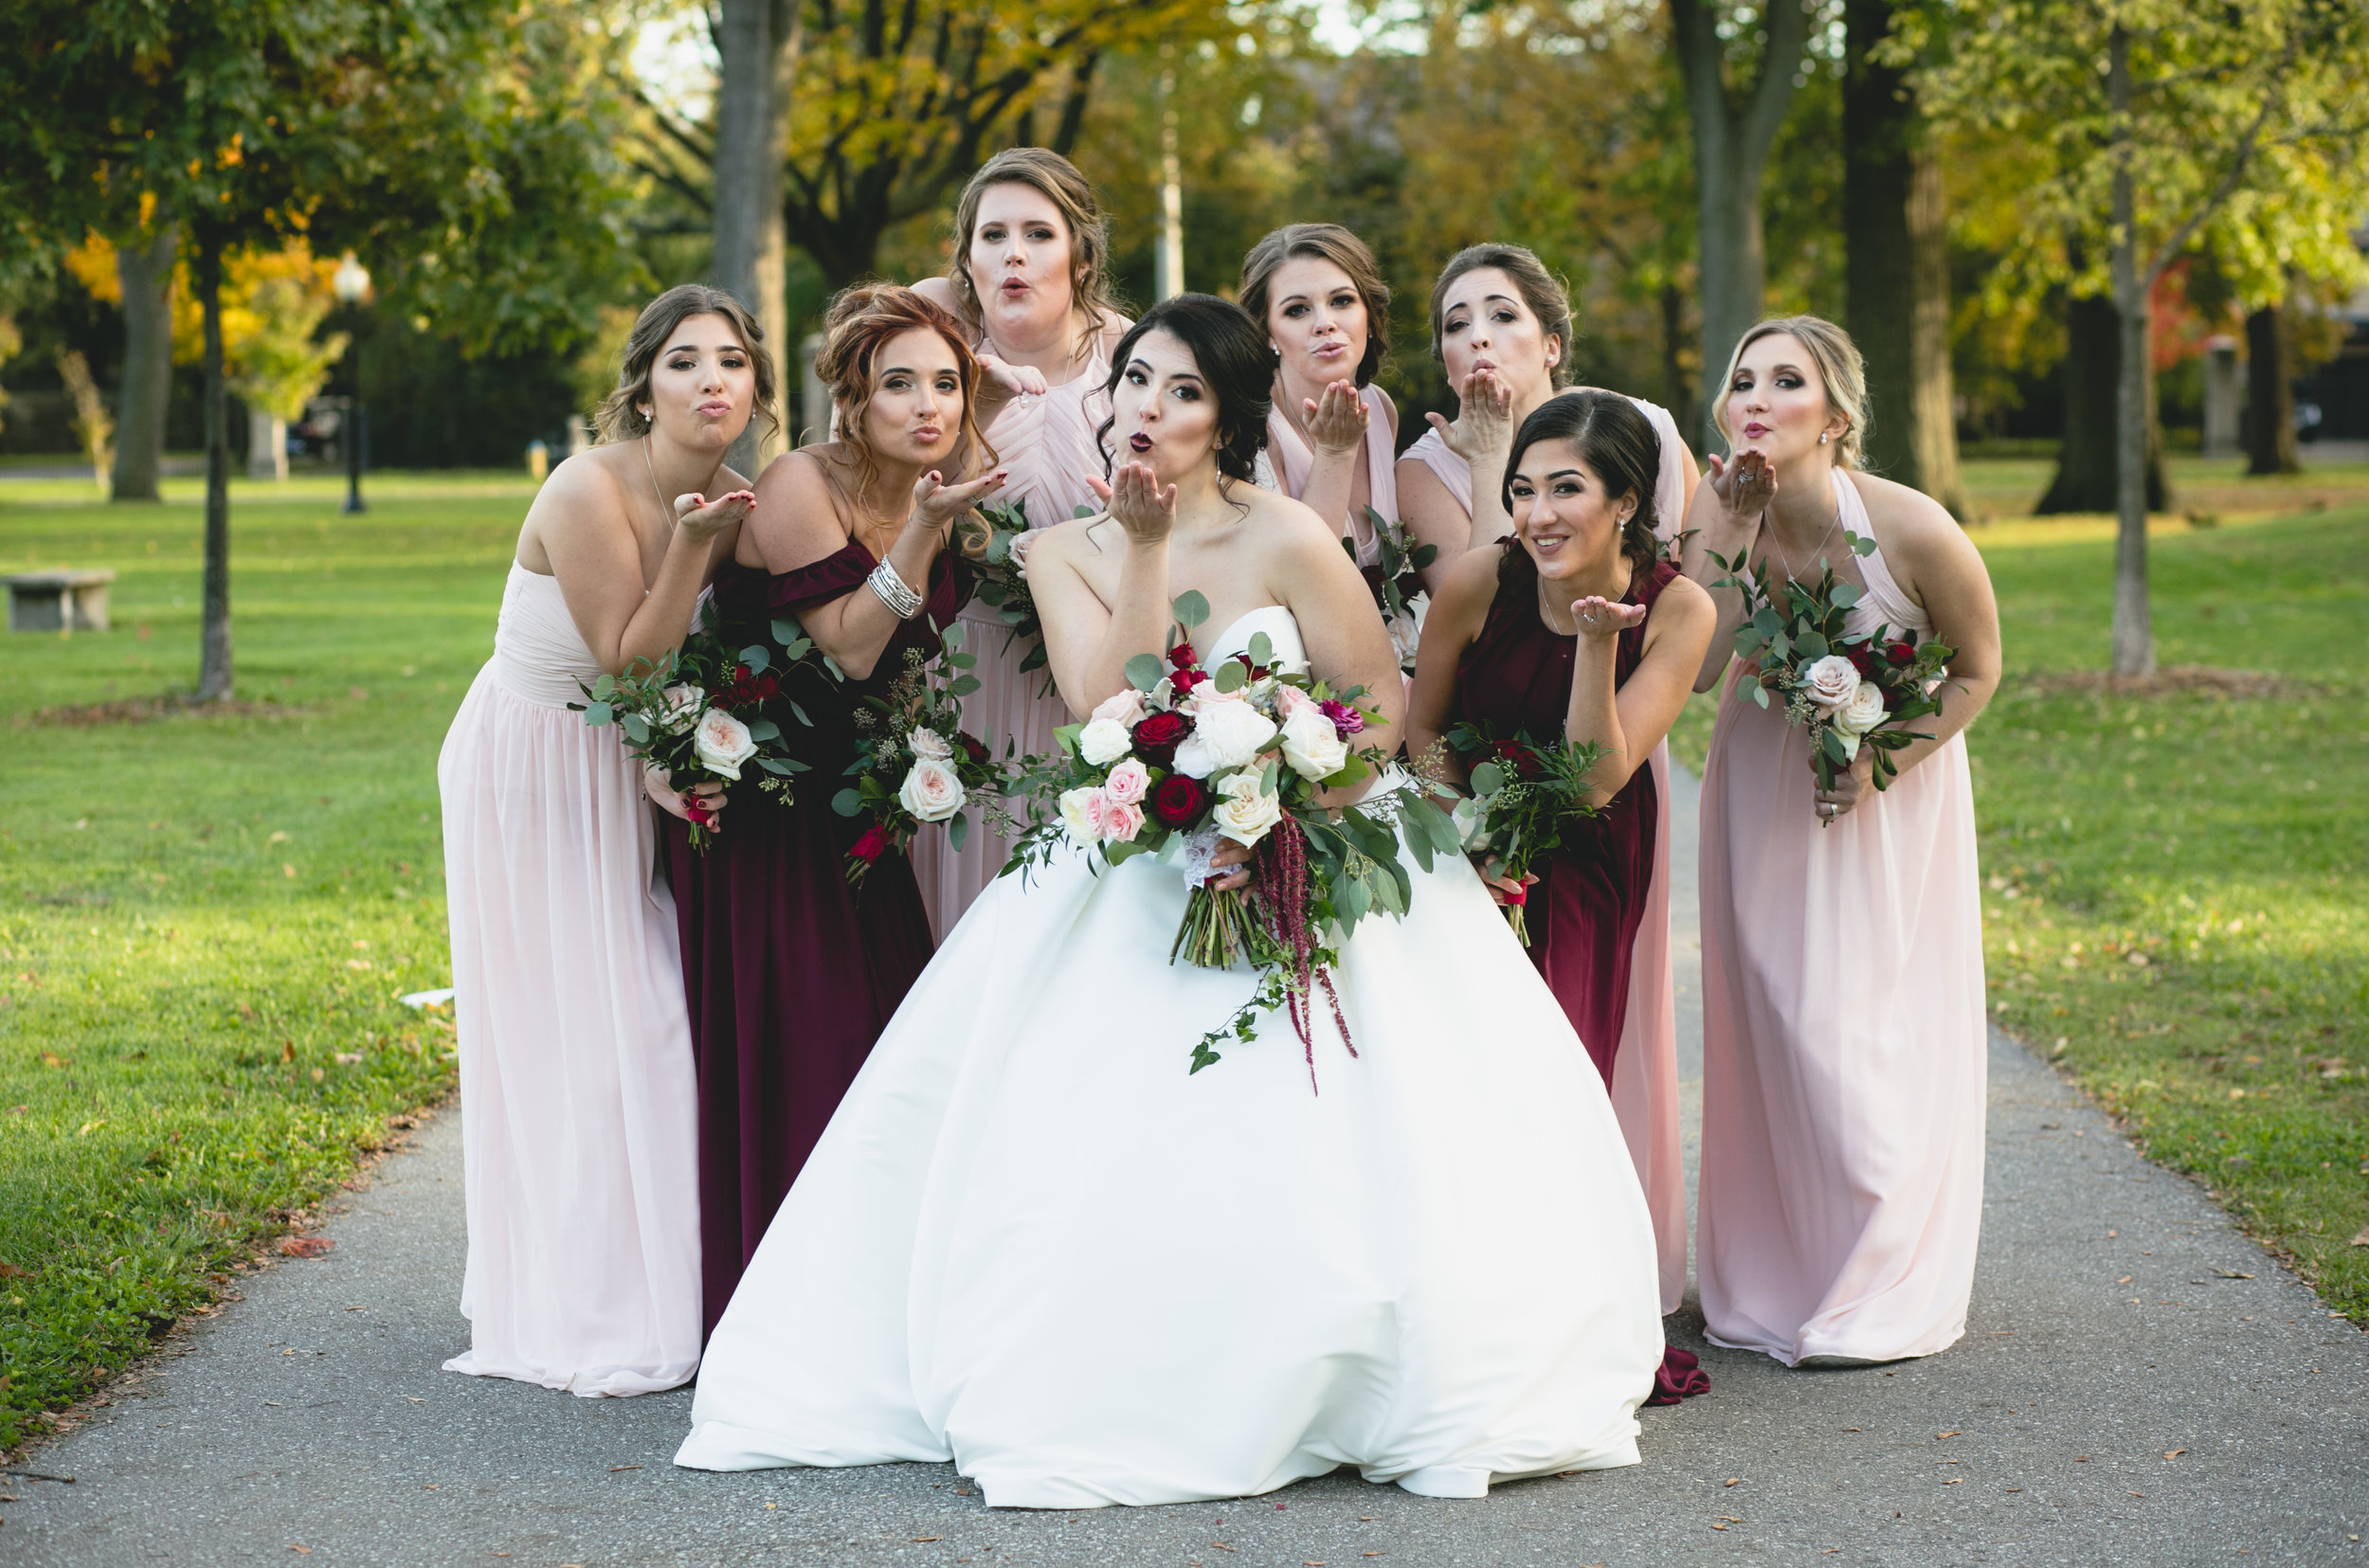 """I saw my wedding photos and burst into tears, I love them!"" - Samantha Rossi"